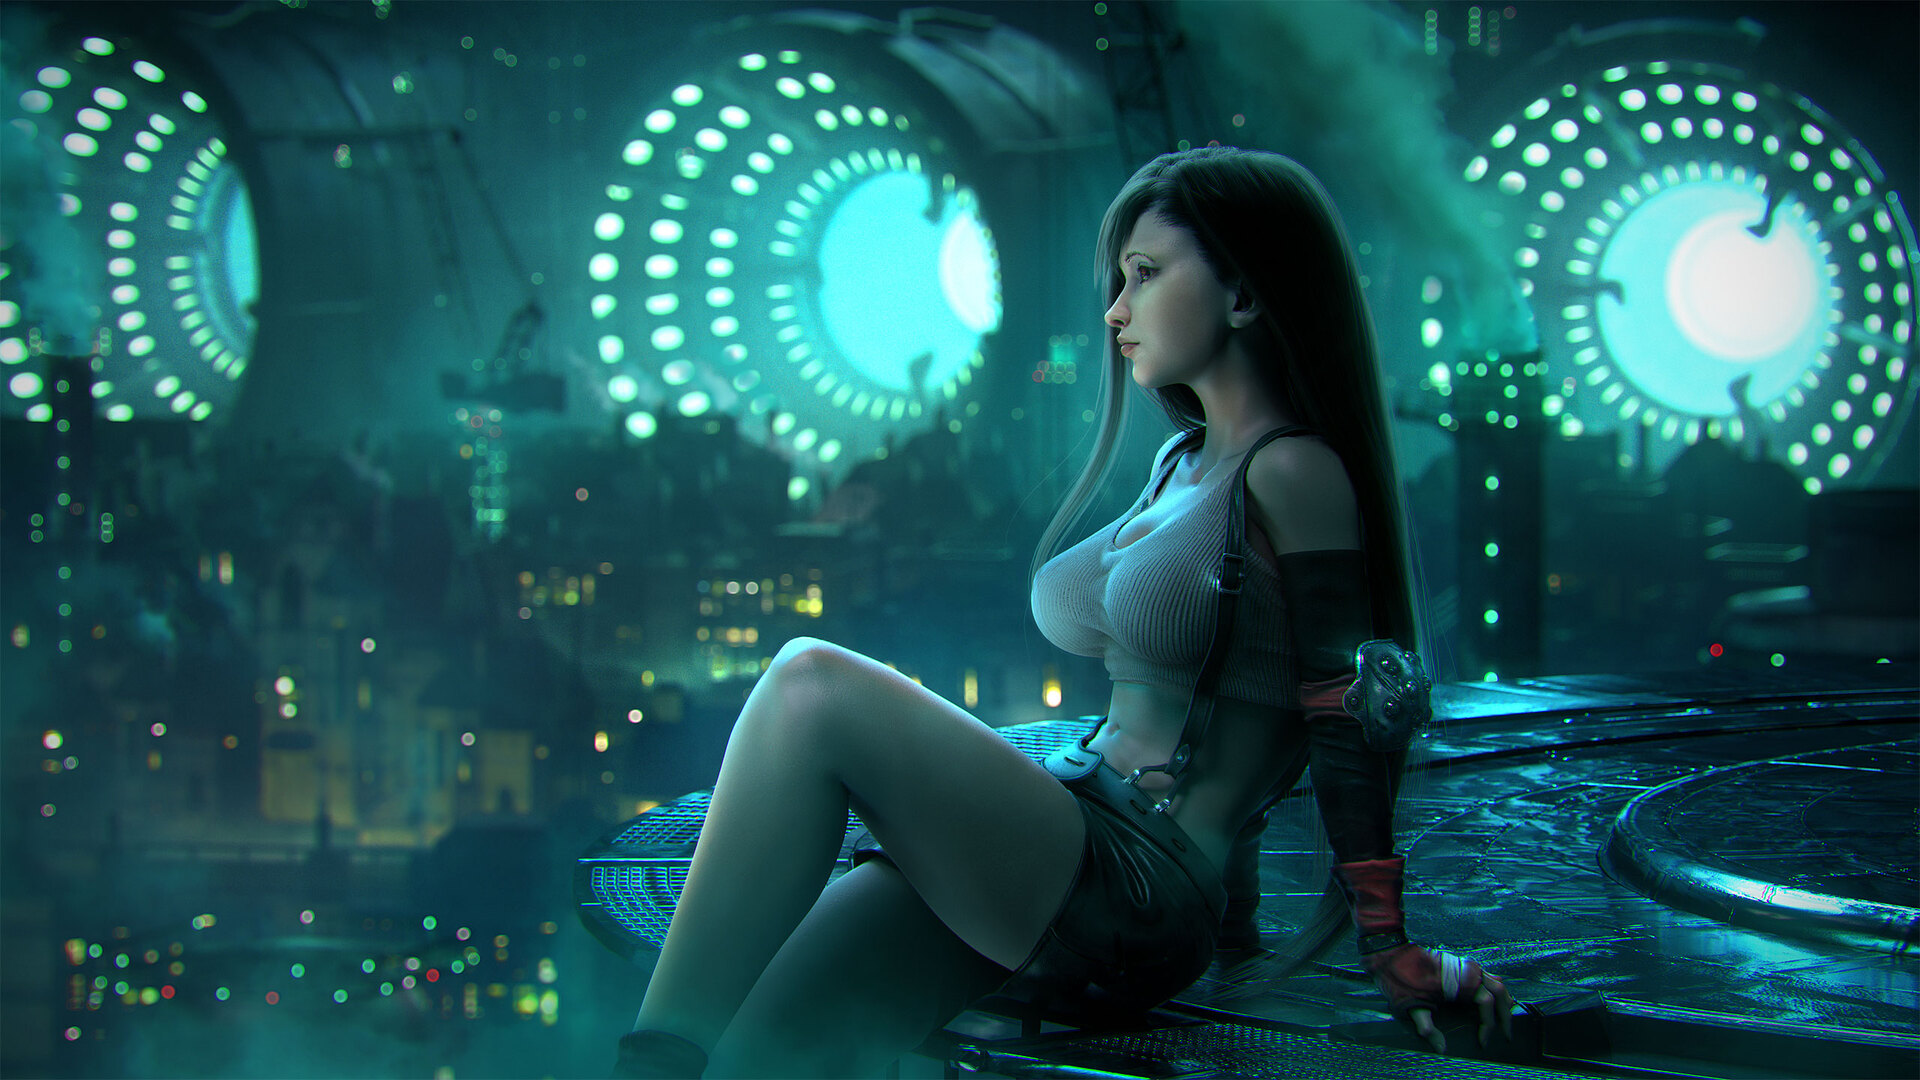 download wallpaper tifa lockhart - photo #2